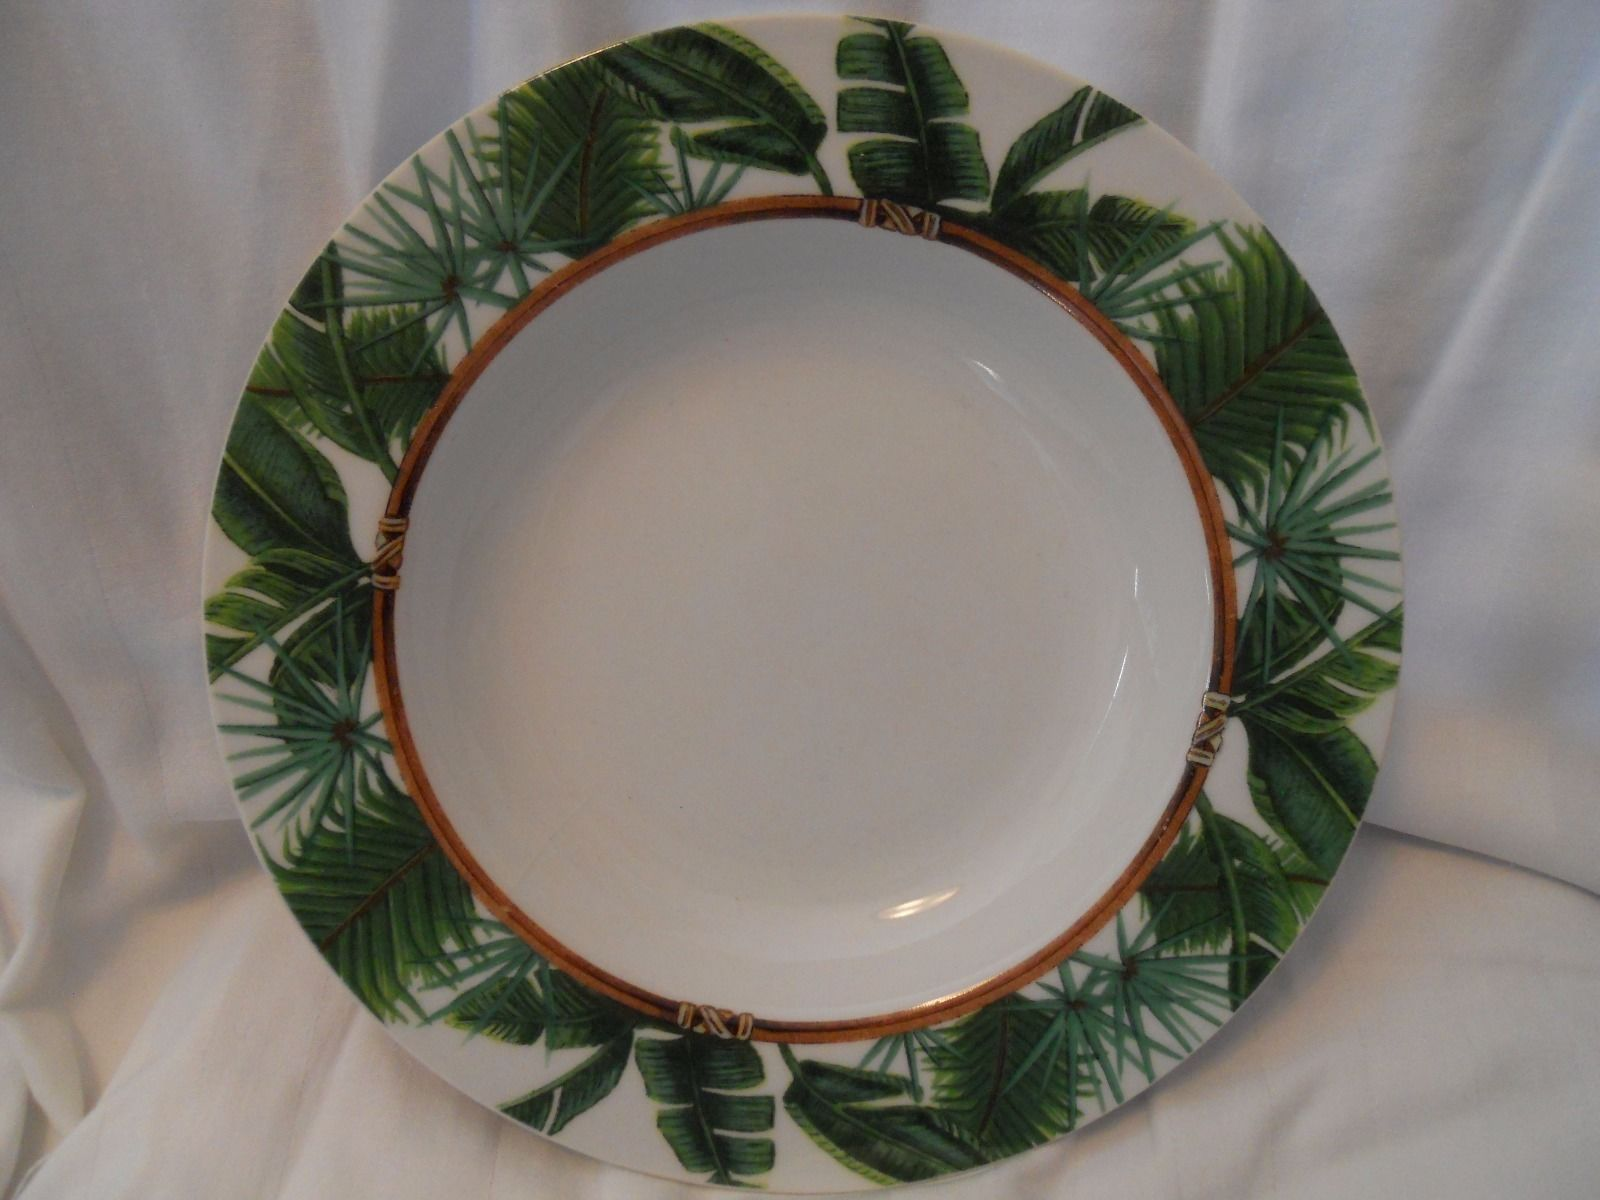 Florida Marketplace Palm Island 8 5/8 inch rim soup bowl palm leaves new & Florida Marketplace Palm Island 8 5/8 inch and 50 similar items